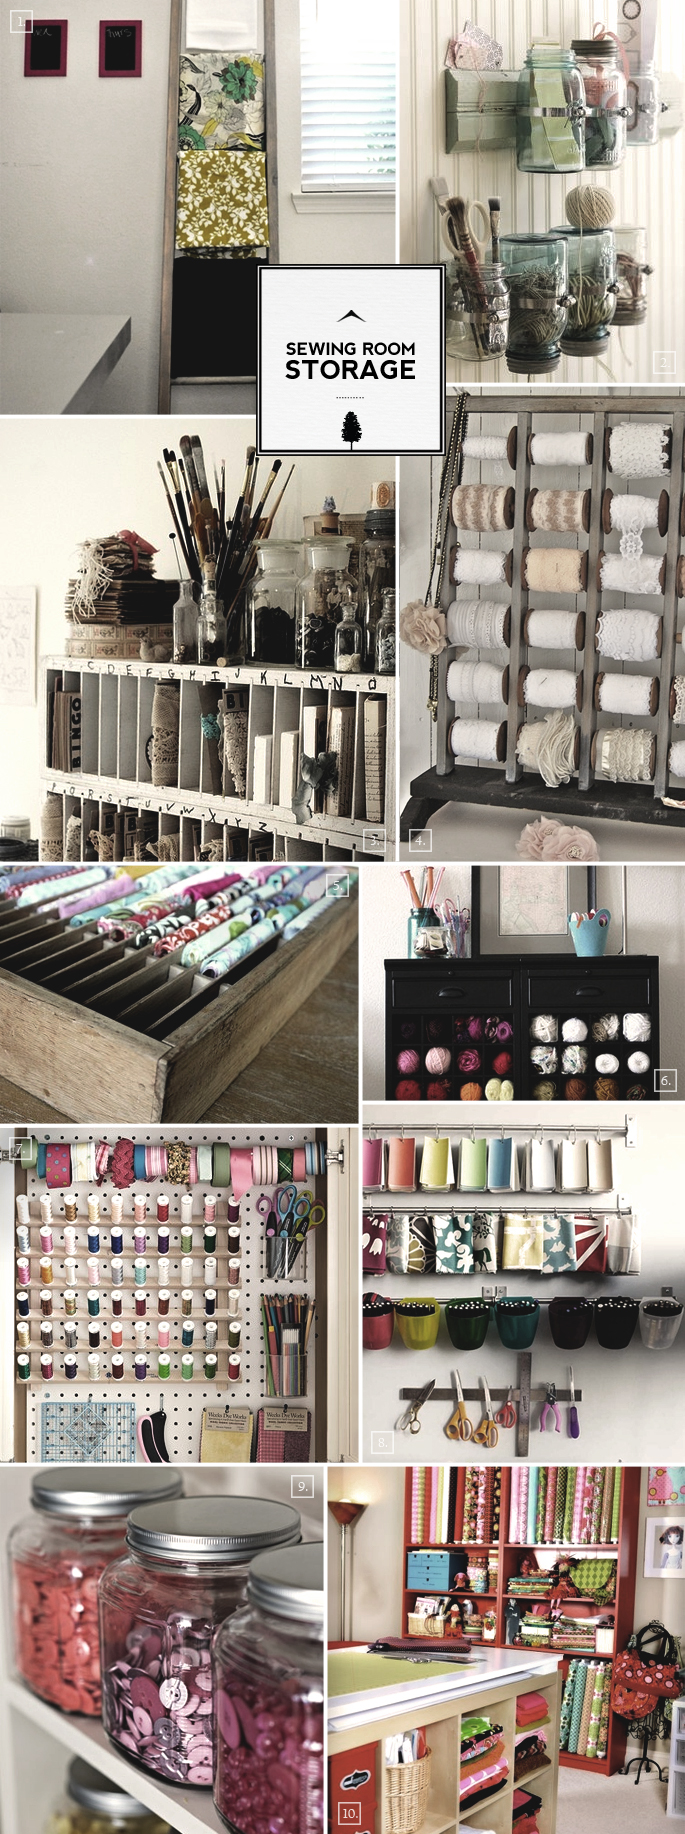 Sewing Room Organization Ideas From Storage To Display